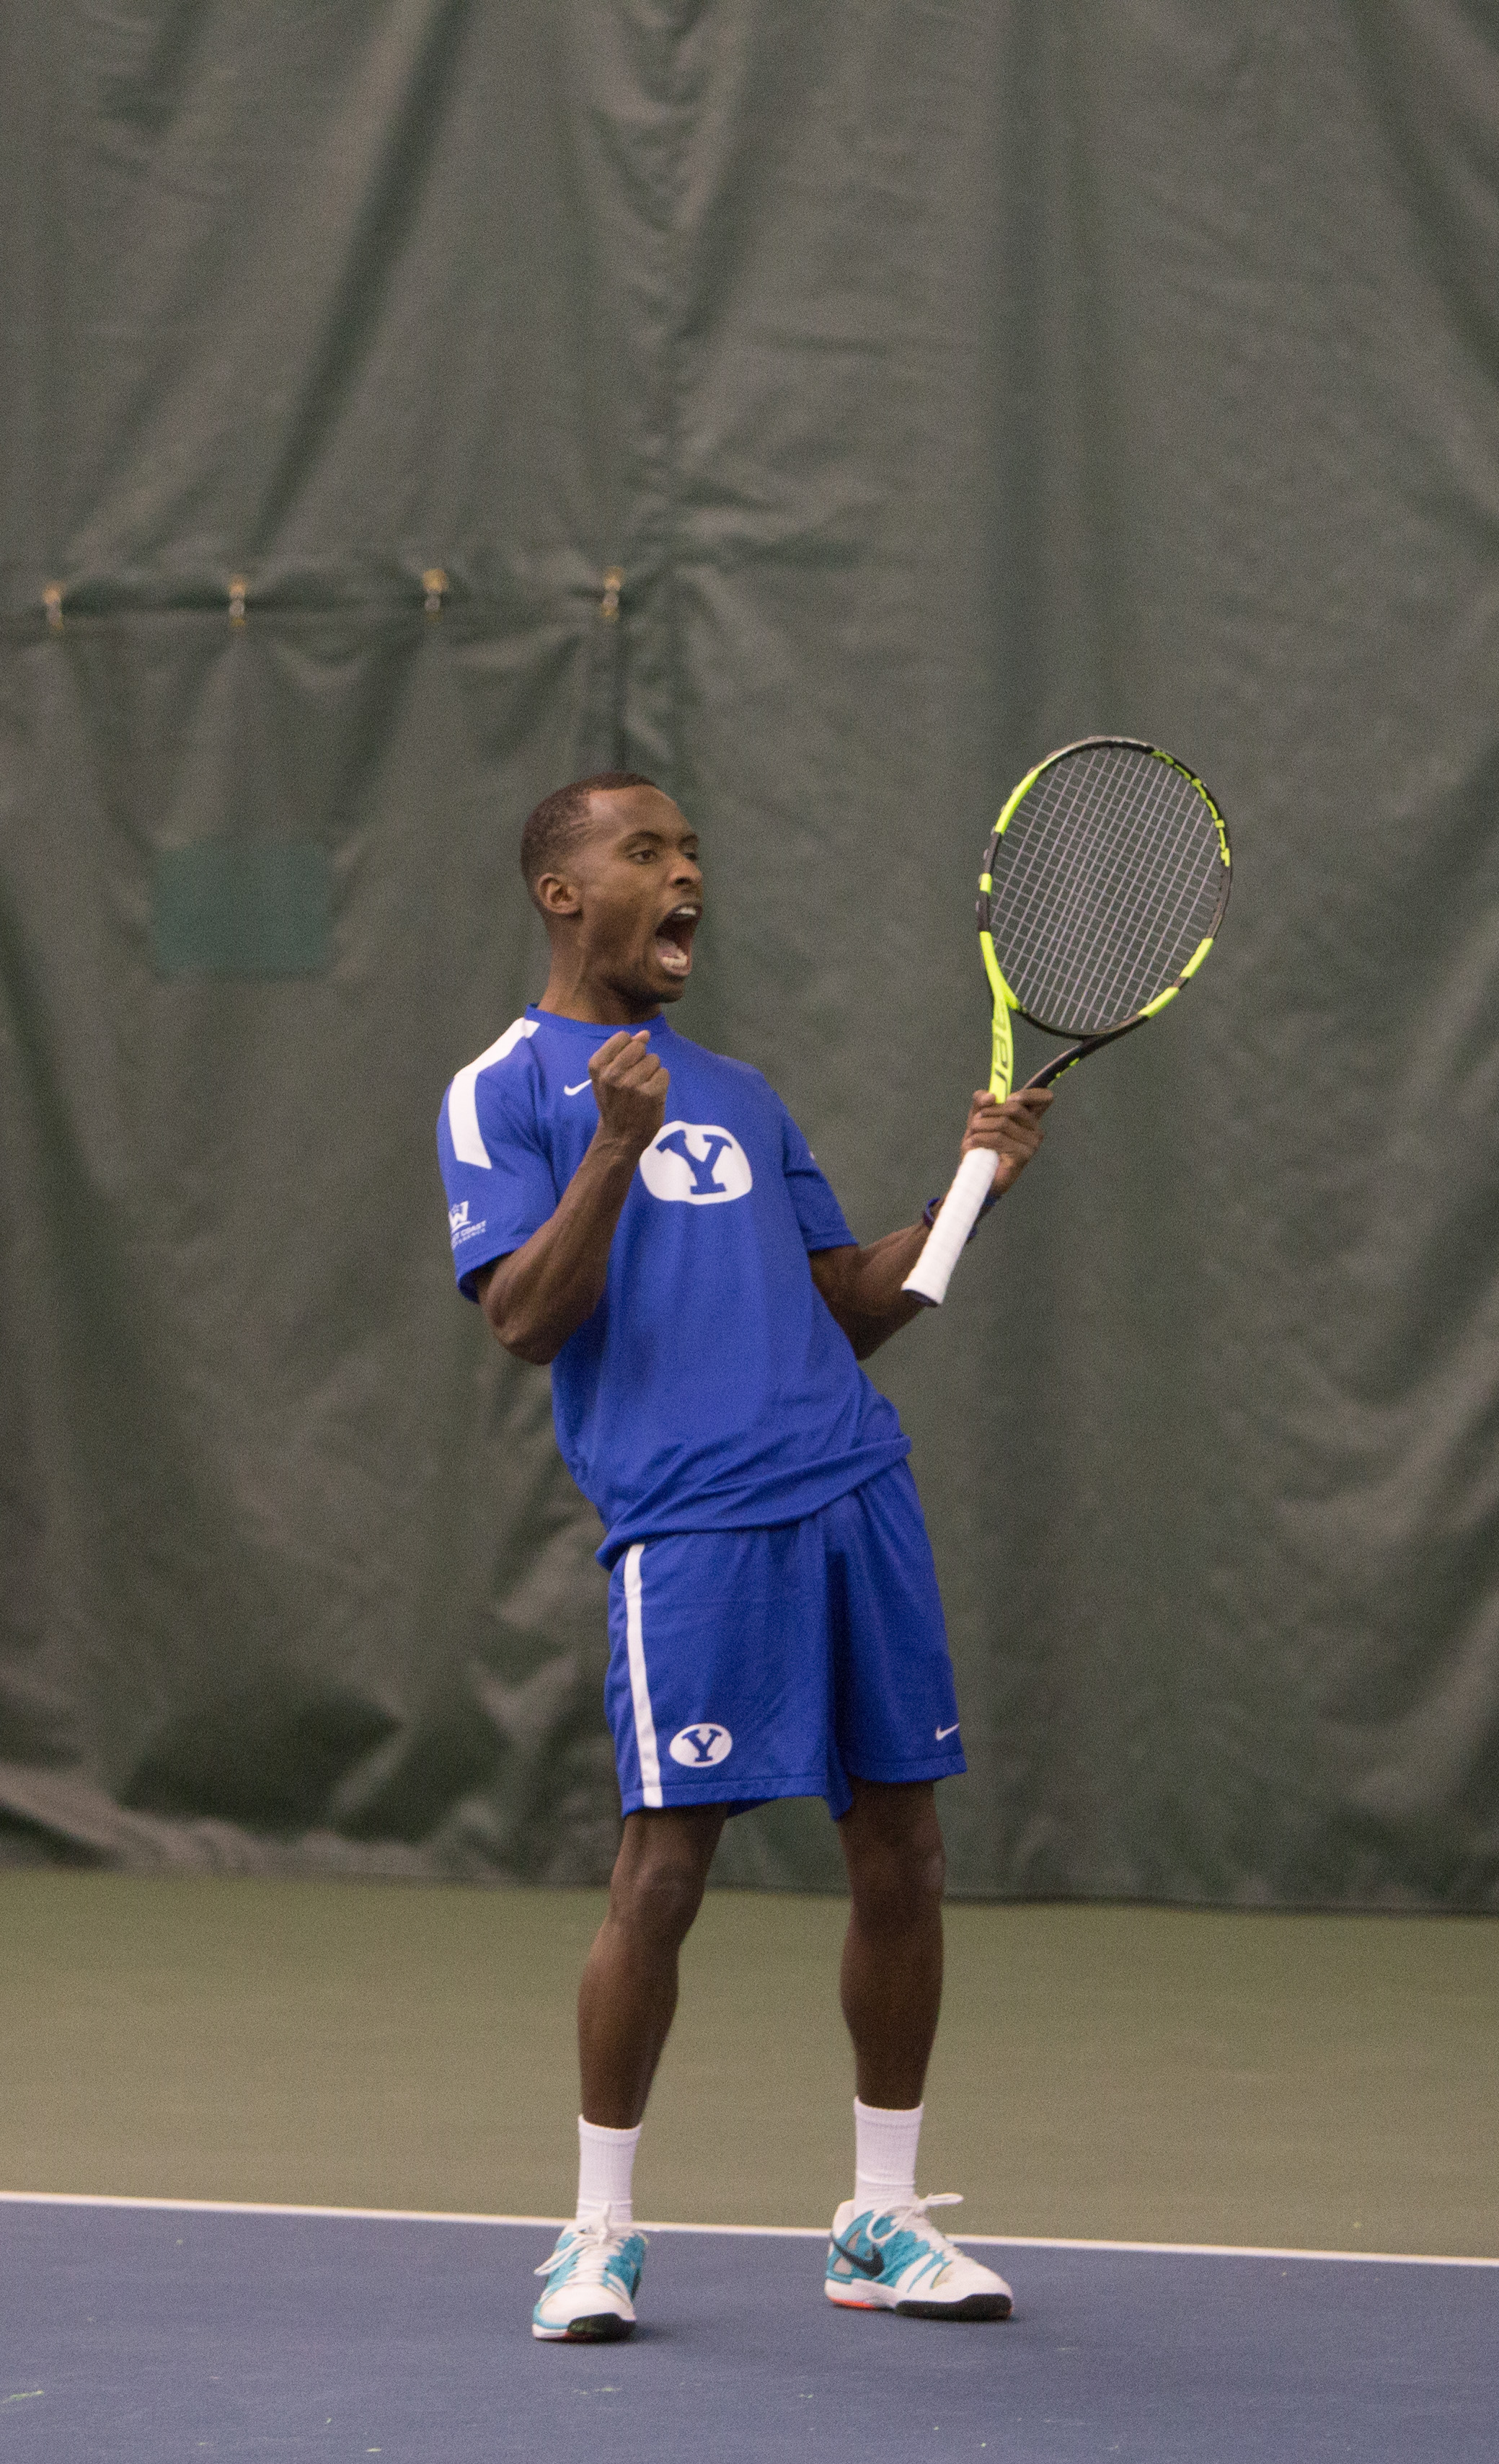 BYU men's tennis sweeps Boise State - The Daily Universe